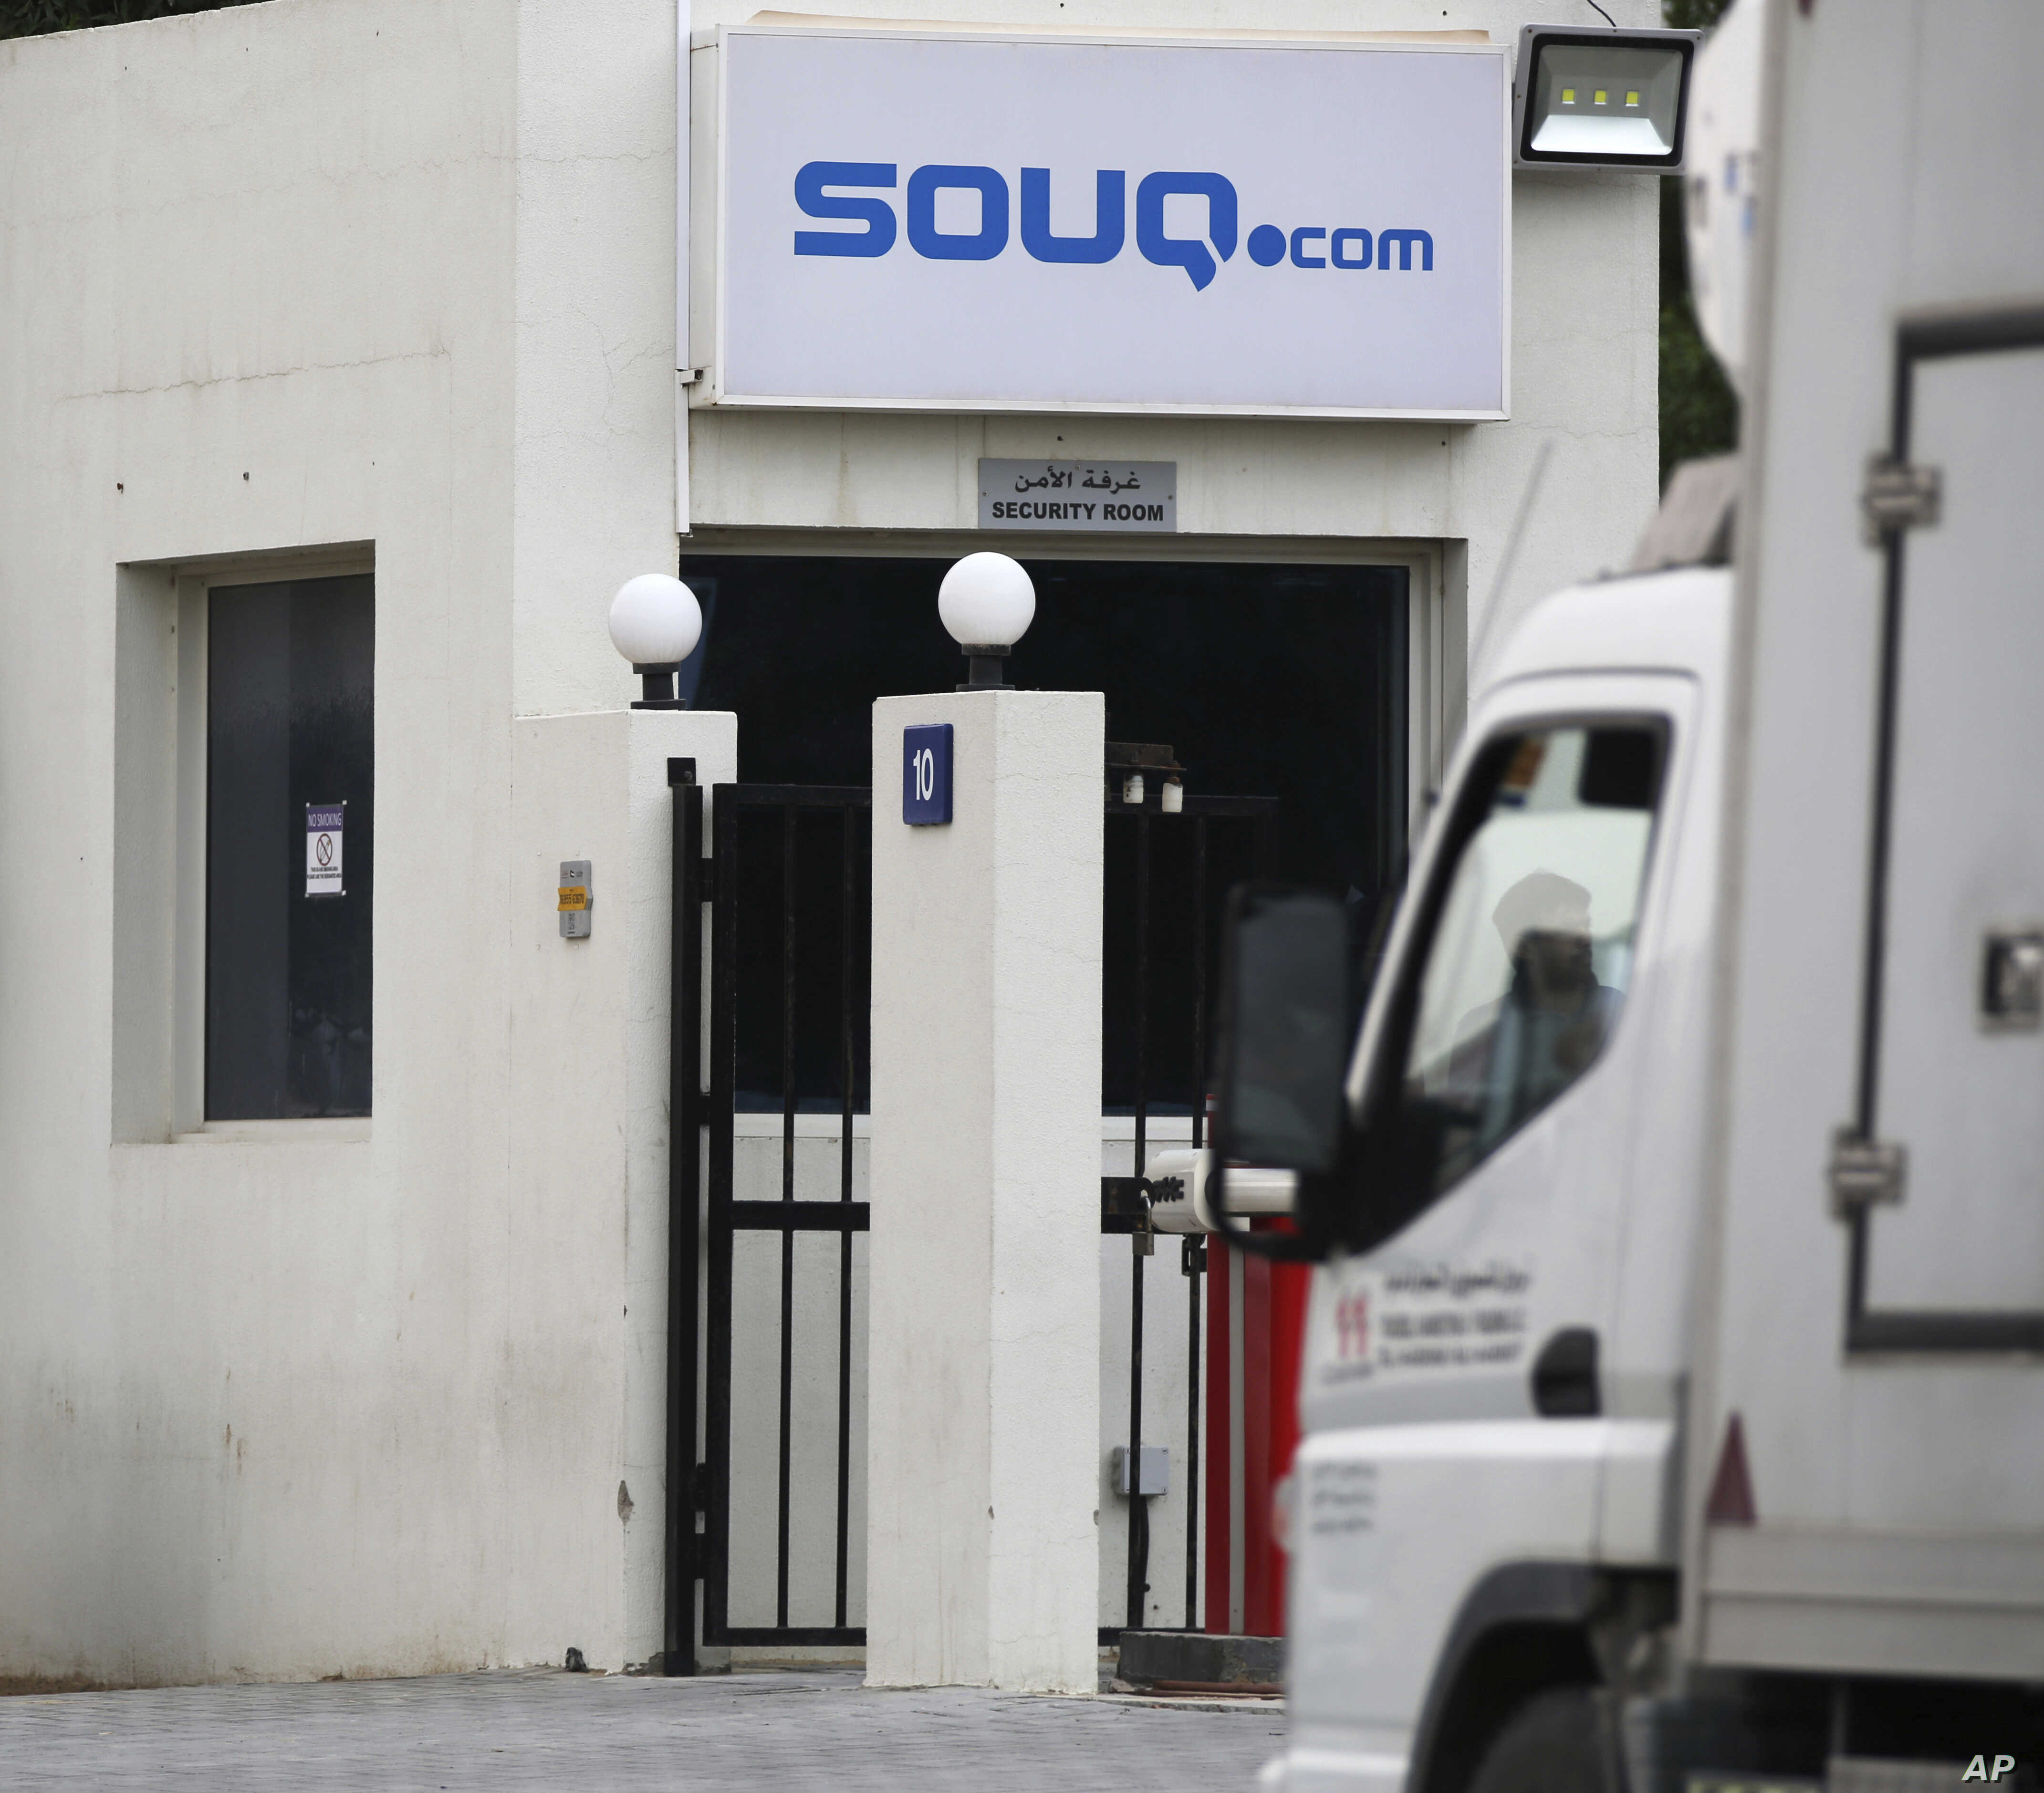 Souq Com Says Amazon Has Bought It After 800m Counteroffer